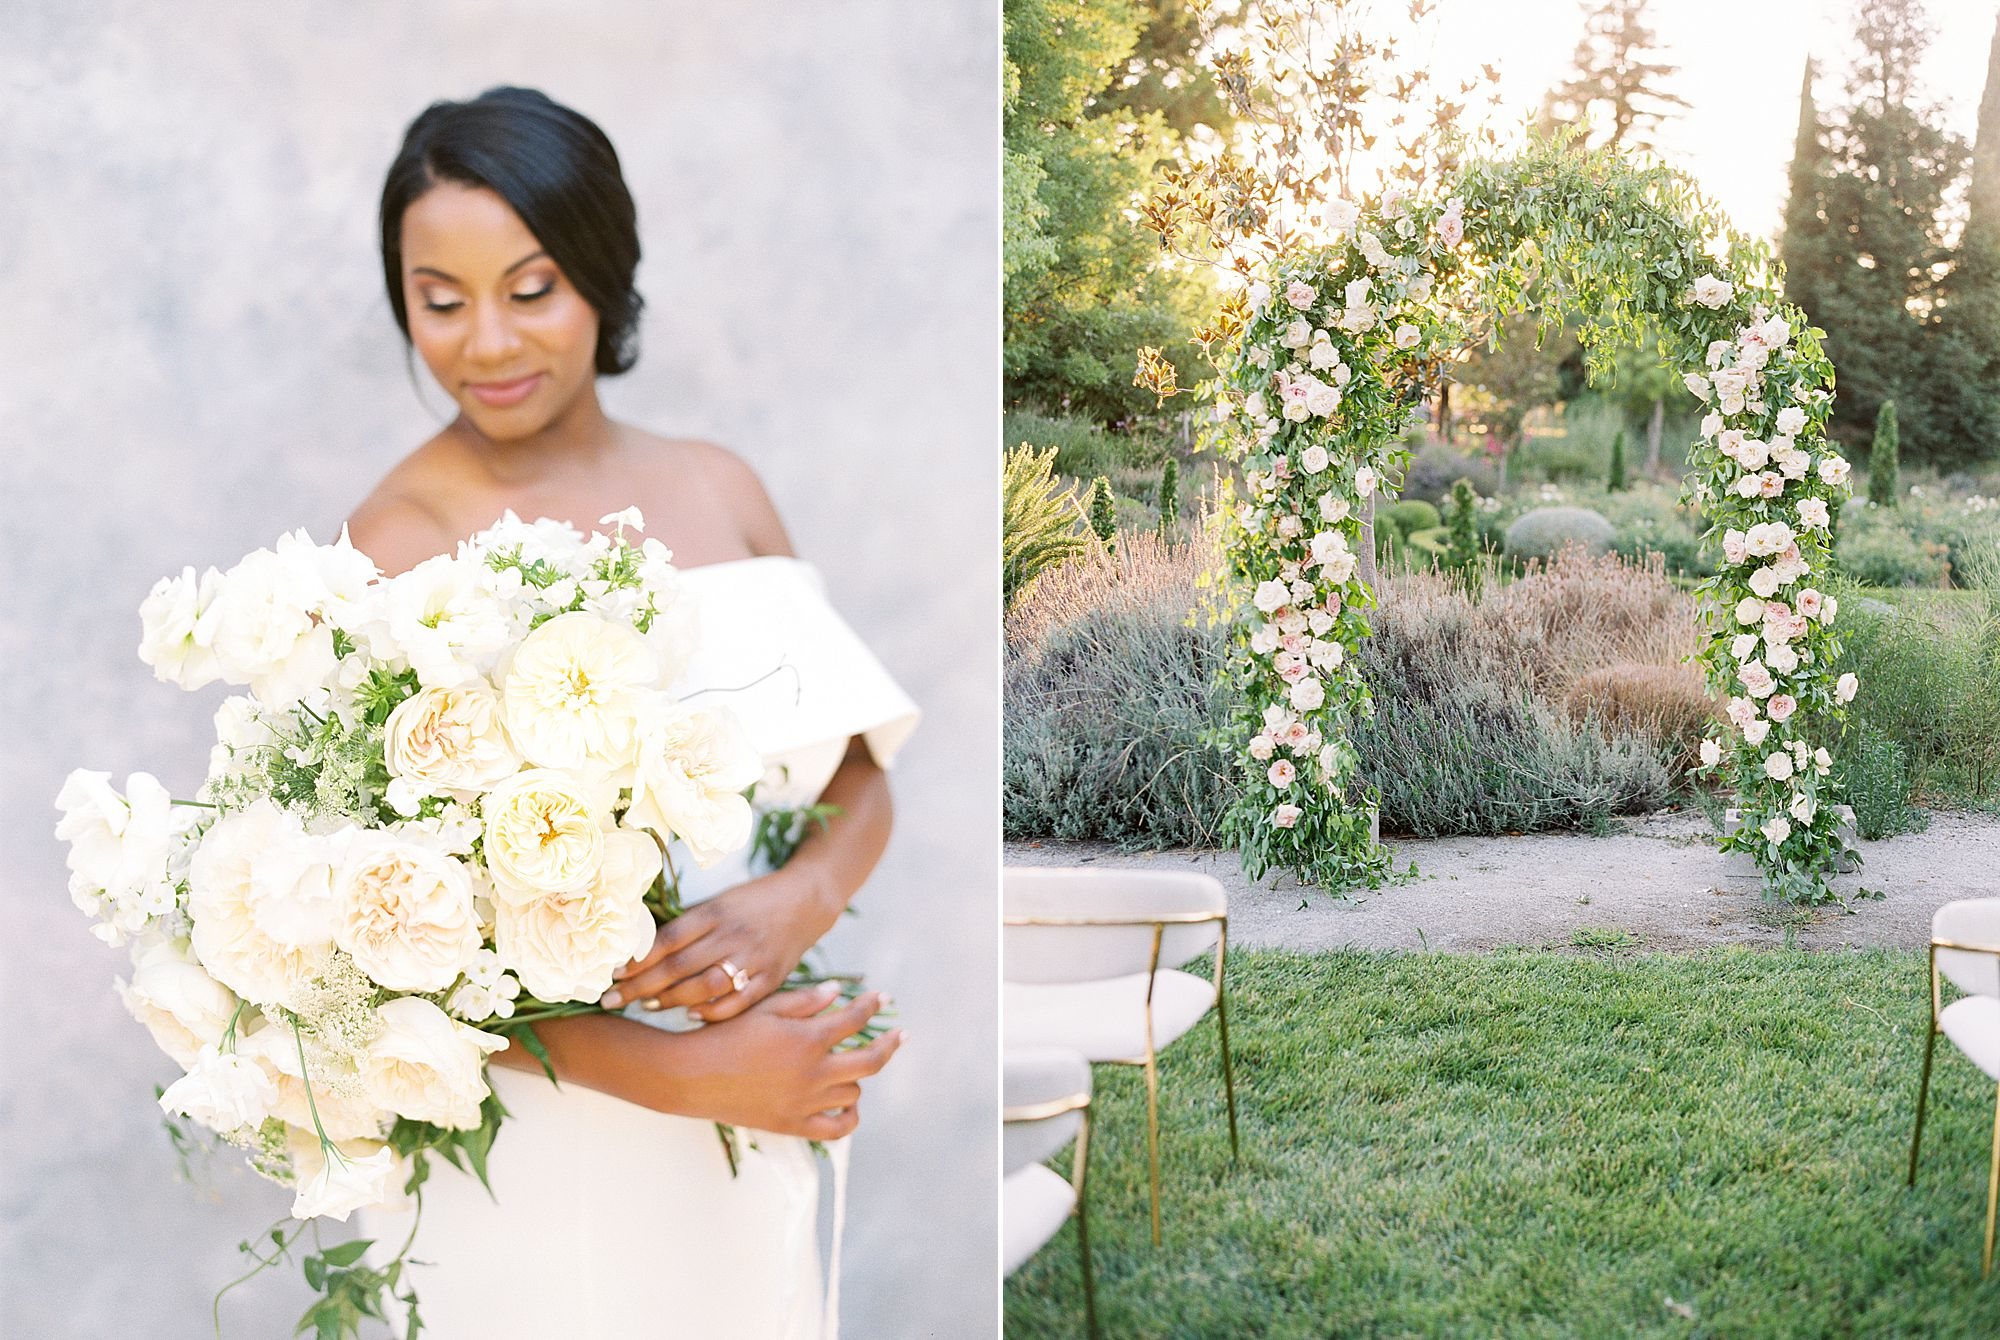 Park Winters Micro-Wedding Inspiration on Style Me Pretty - Stephanie Teague Events - Ashley Baumgartner - Park Winters Wedding - Black Tie Wedding - Micro-Wedding Sacramento Photographer_0003.jpg